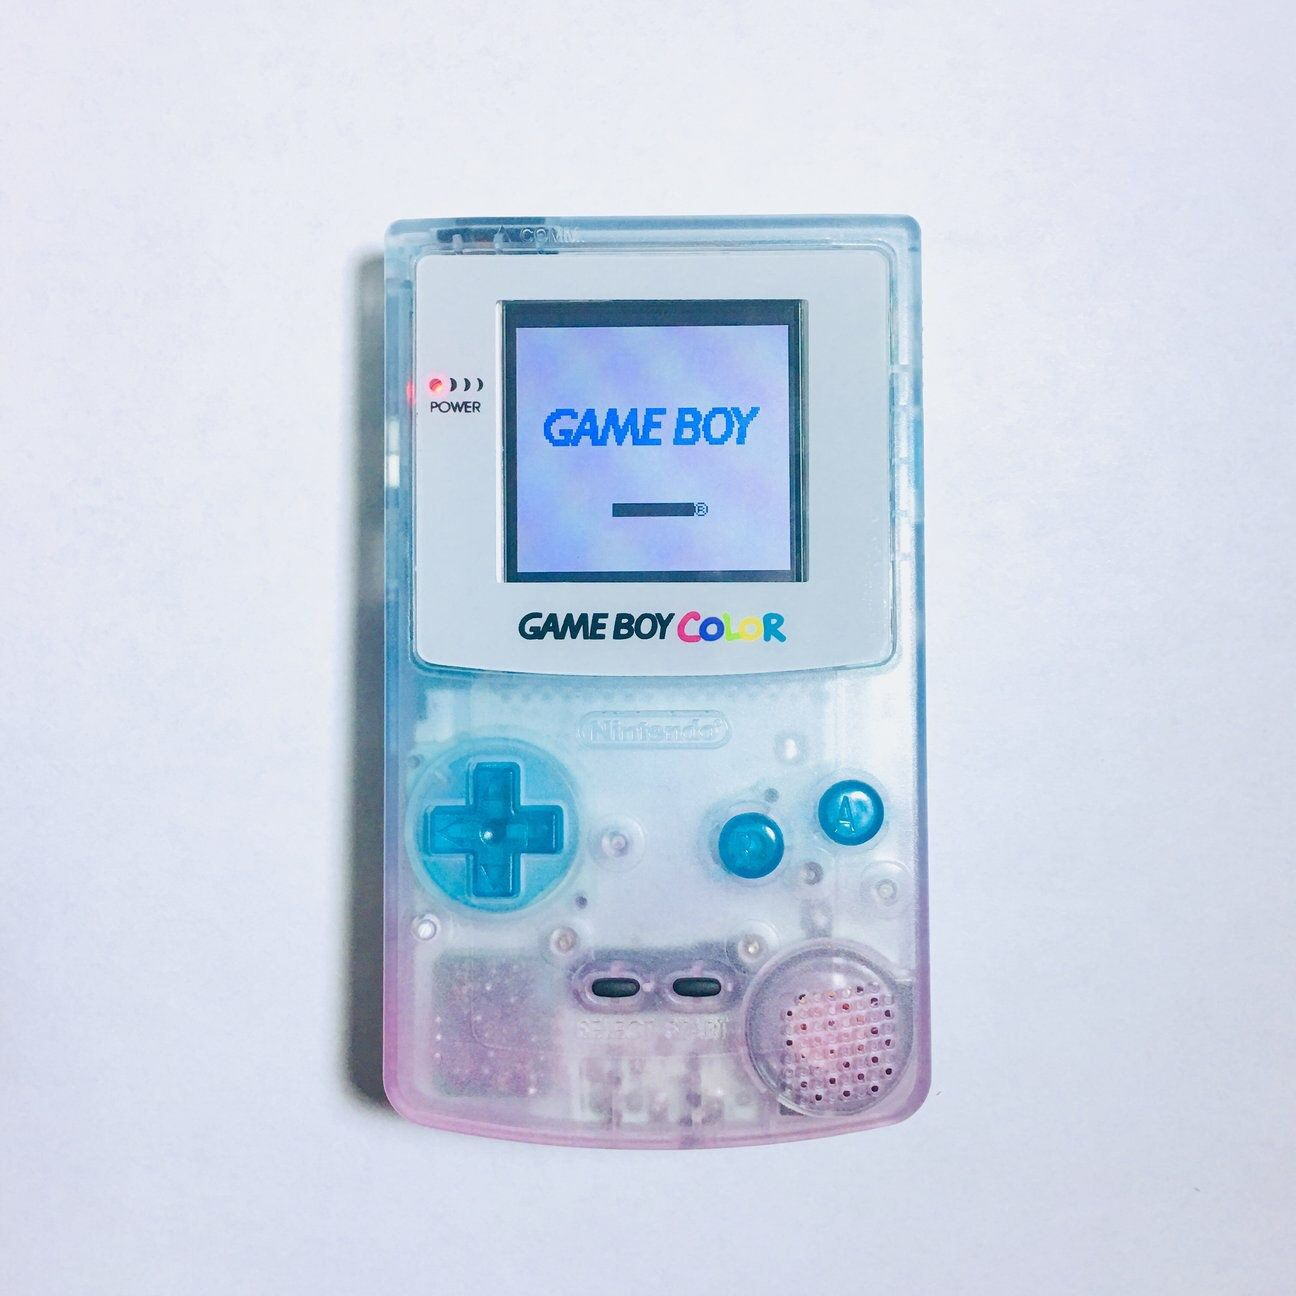 Custom Pink And Blue Fade Gameboy Color With Frontlight Or Etsy In 2021 Gameboy Blue Game Cute Games